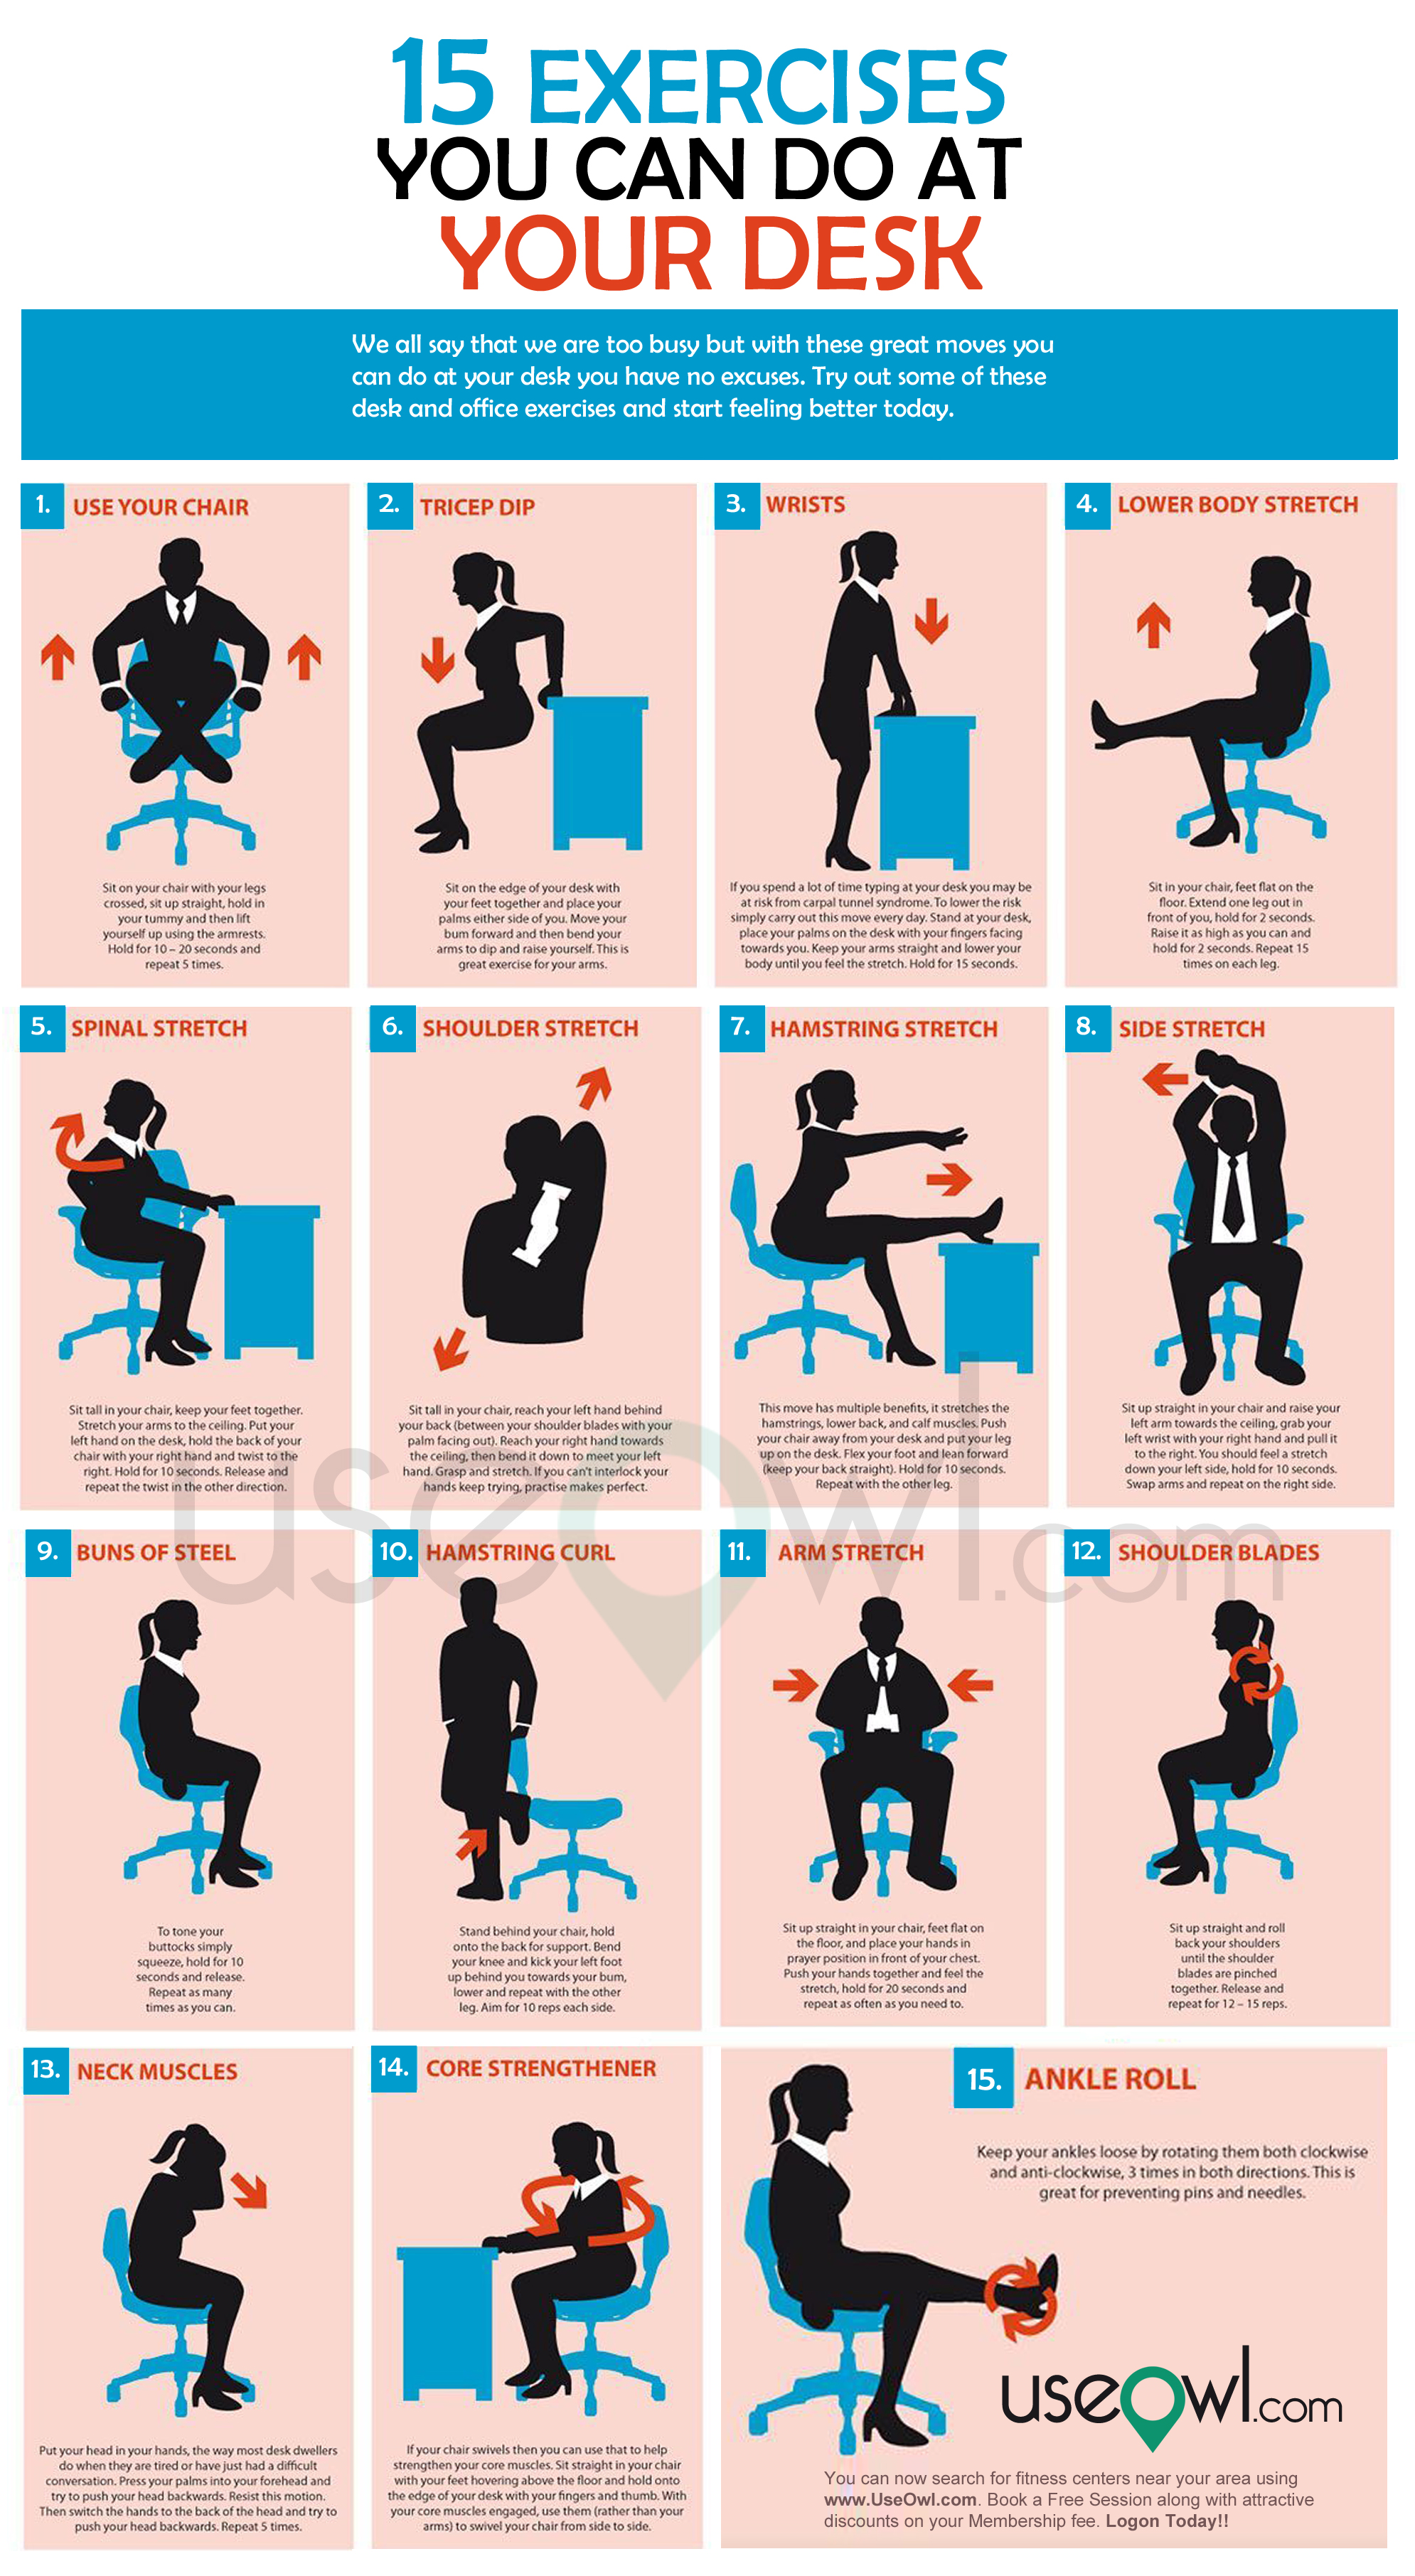 Office Chair Exercises 5 Healthy Habits To Combat The 9 5 Office Life Sfu Olc